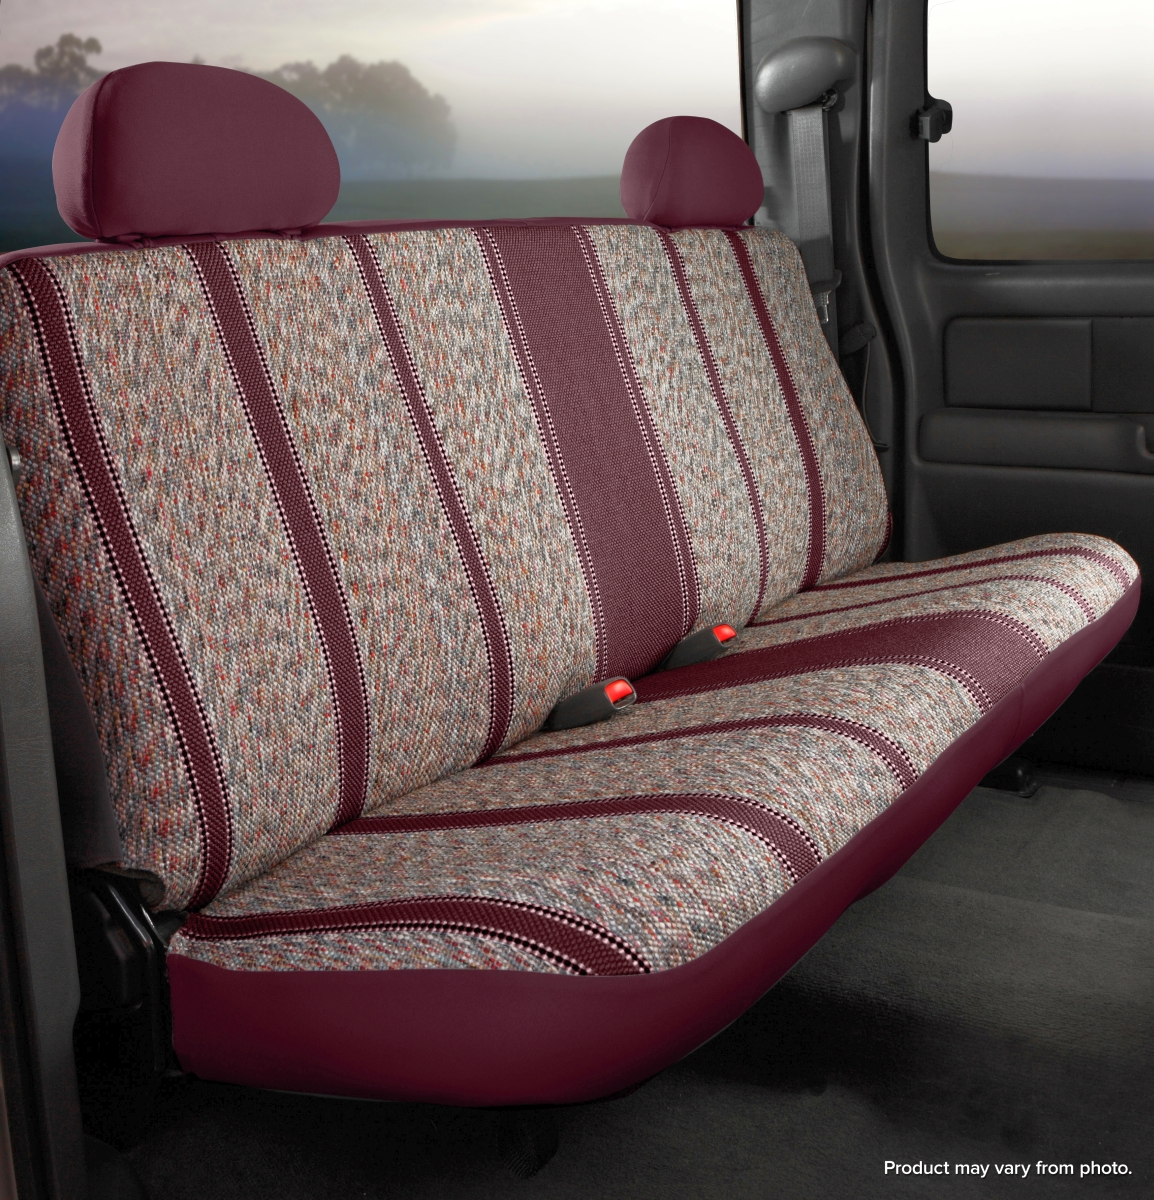 Fia Wrangler Series 1st Row Wine Seat Covers - Fia TR48-11 WINE